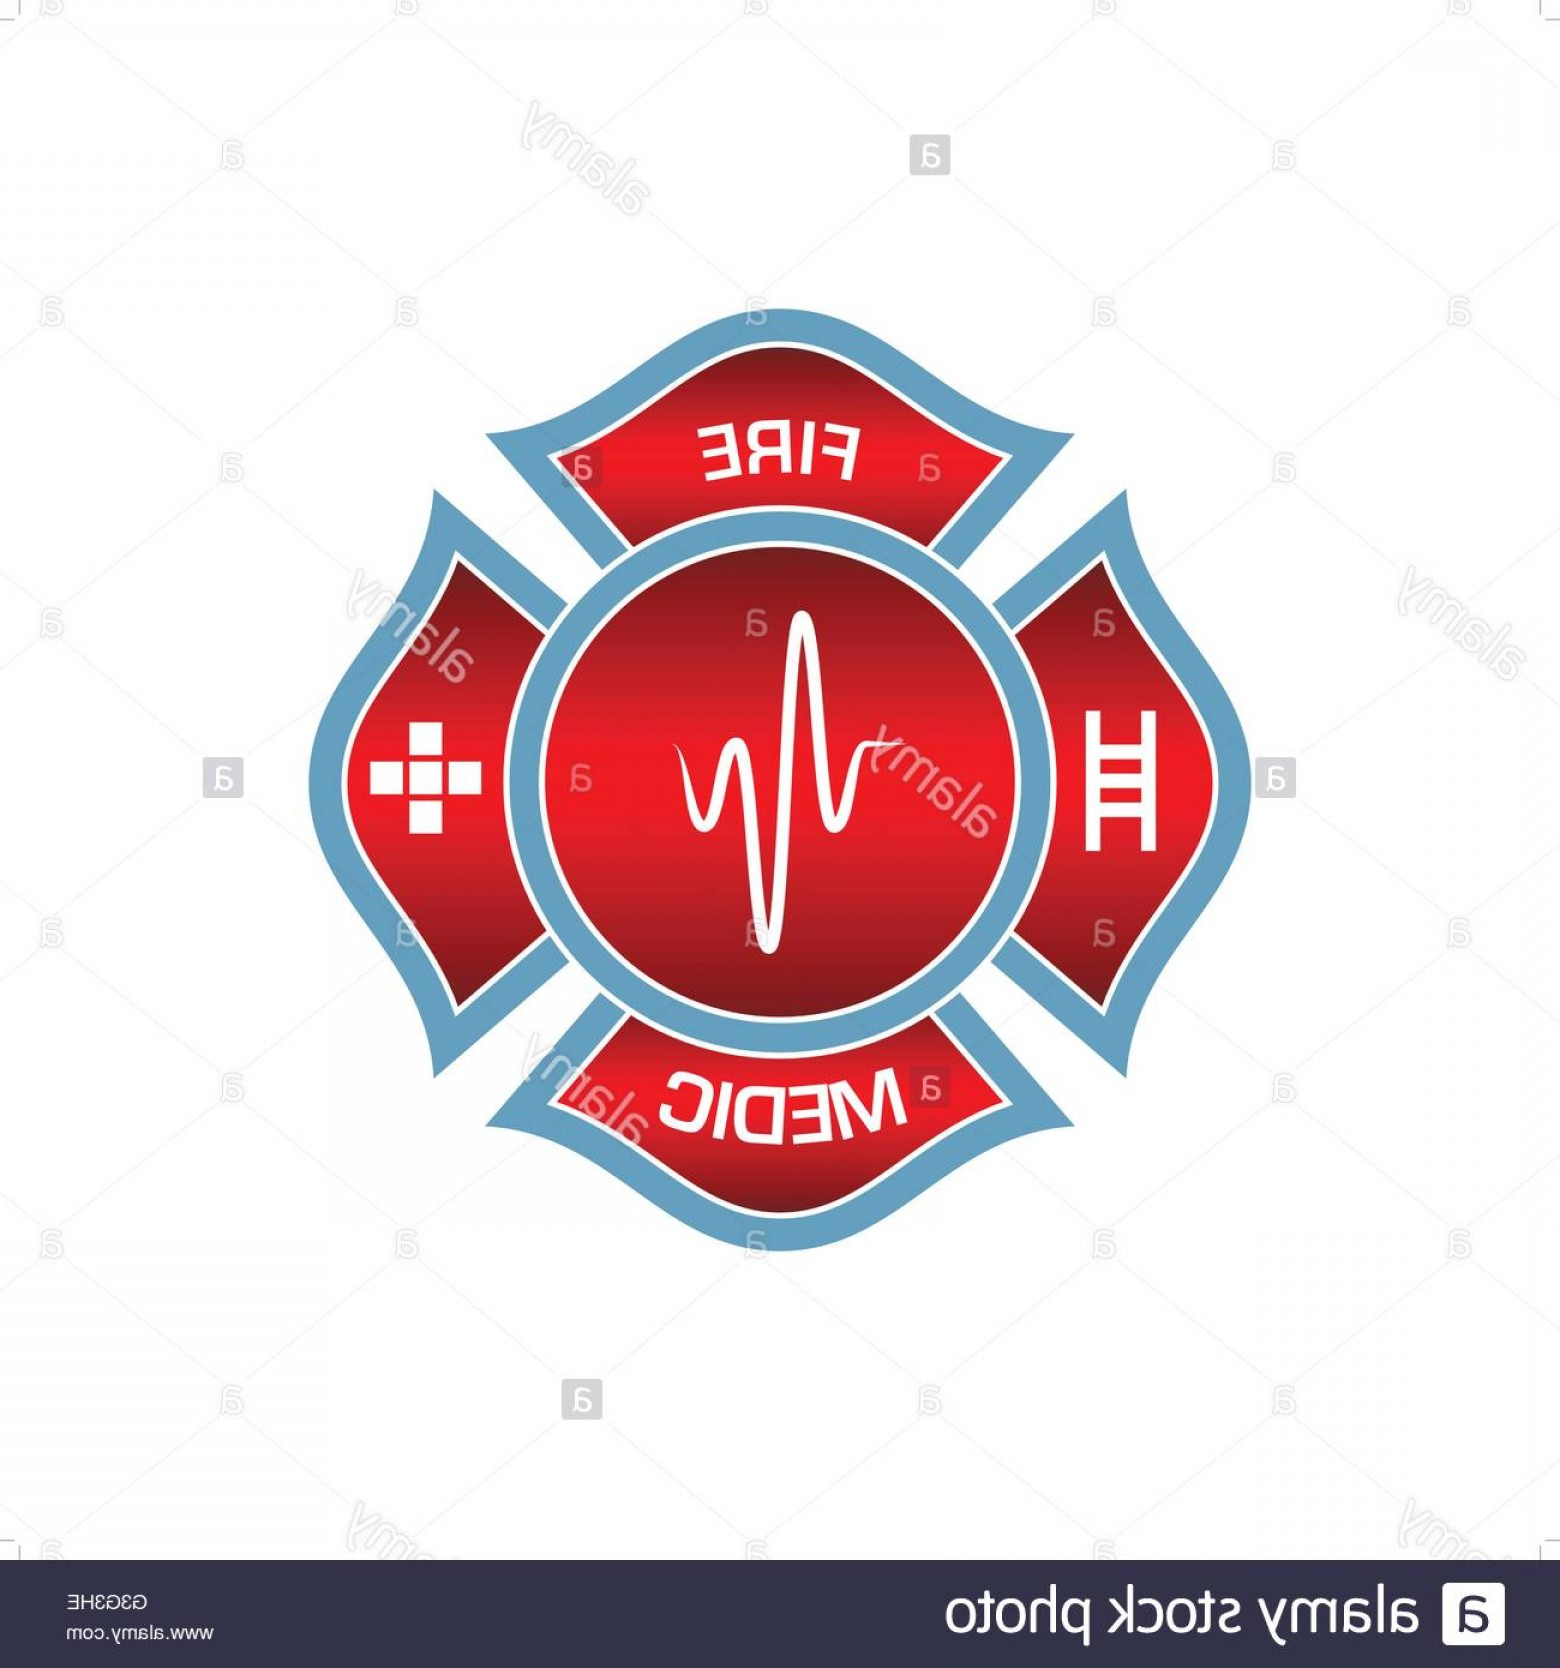 Fire Fighter Logo Vector: Stock Photo Beautiful Red Firefighters Logo Vector Illustration Isolated On White